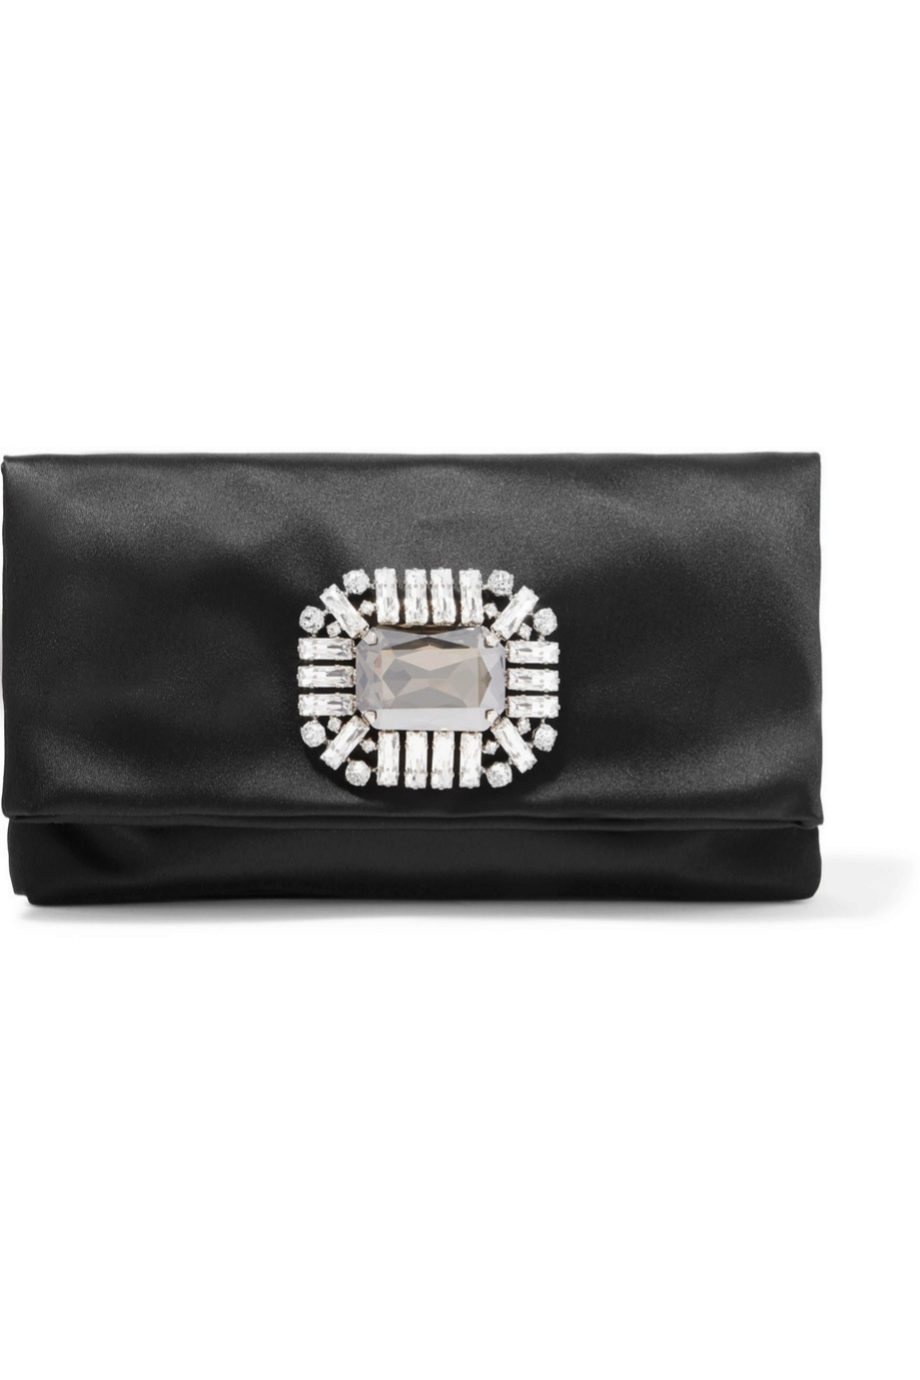 'Clutch' tipo joya de Jimmy Choo